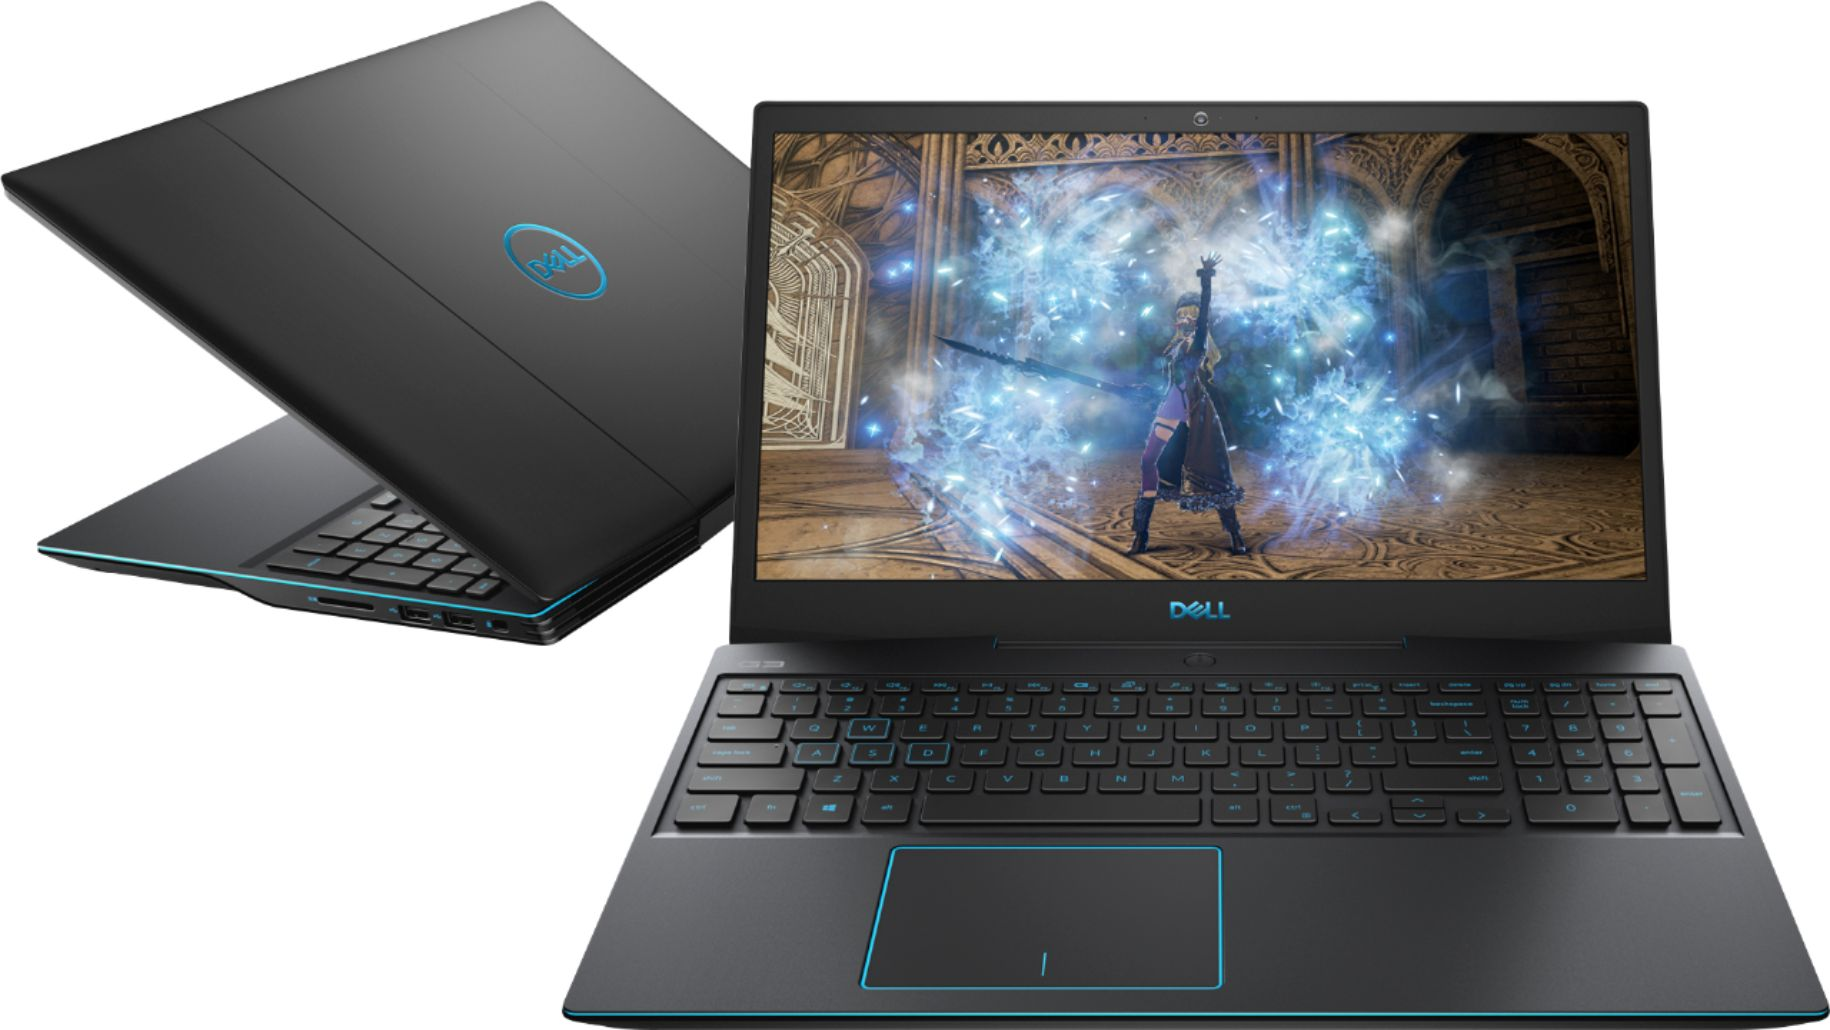 """Dell - G3 15.6"""" Gaming Laptop - Intel Core i5 - 8GB Memory - NVIDIA GeForce GTX 1660Ti - 512GB Solid State Drive - Black $699.99"""